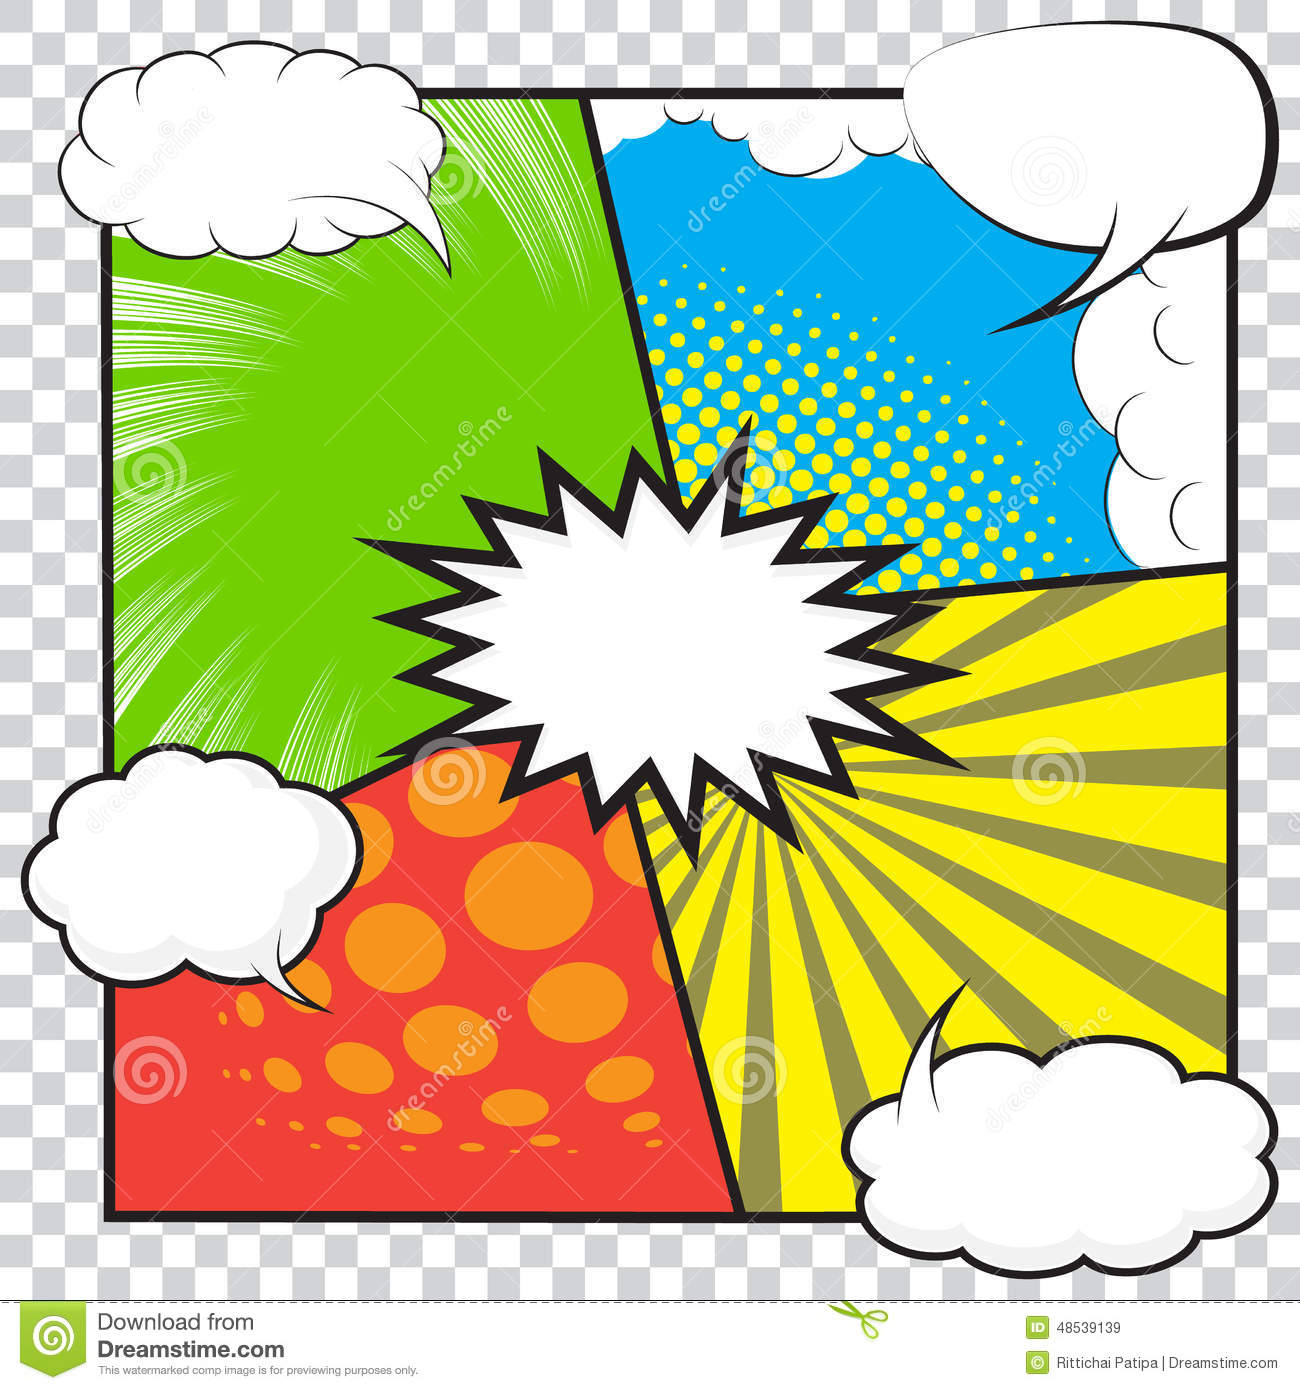 comic book stock vector  image of graphic  emotions  idea